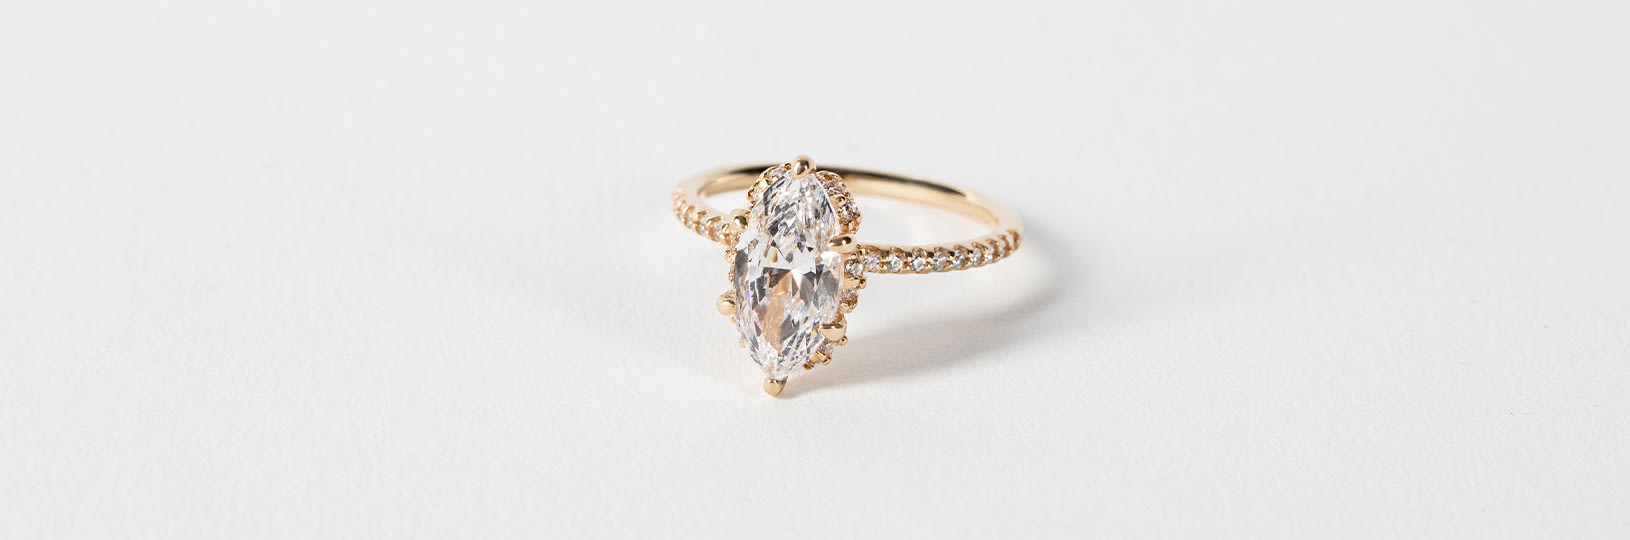 A gold ring featuring a marquise cut stone